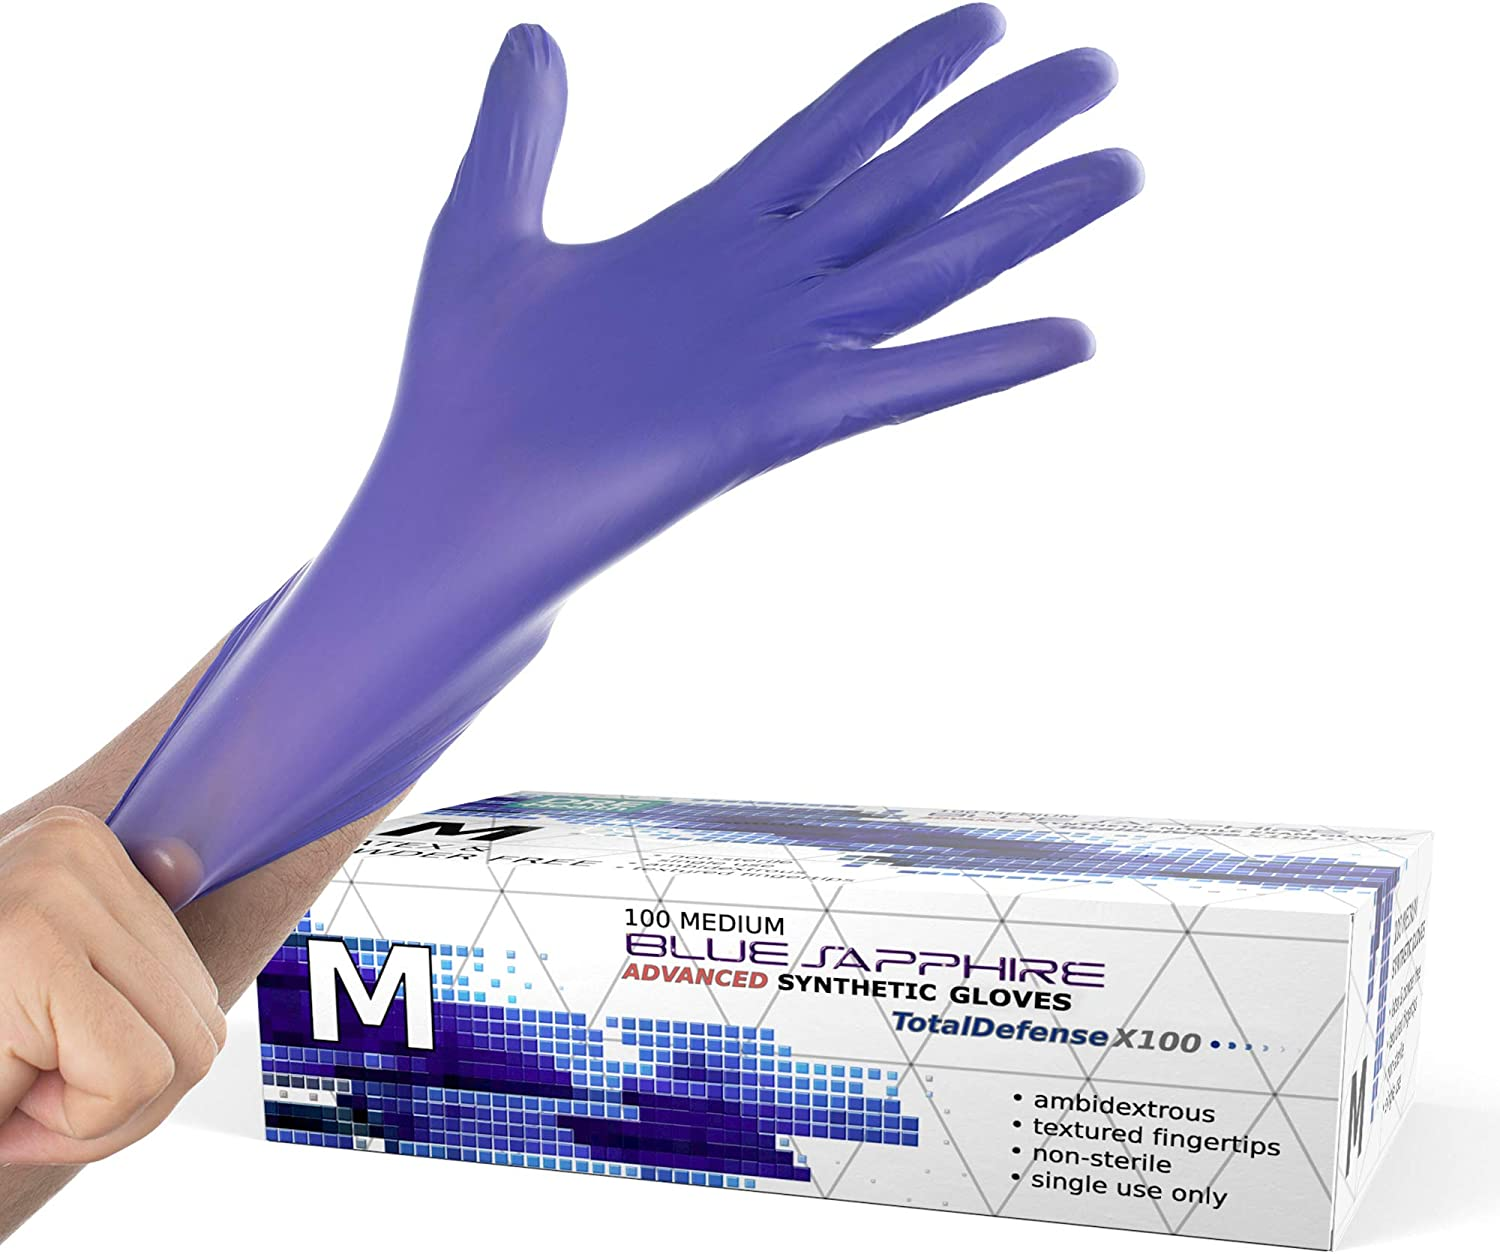 Powder Free Disposable Gloves Medium - 100 Pack - Nitrile and Vinyl Blend Material - Extra Strong, 4 Mil Thick - Latex Free, Food Safe, Blue - Medical Exam Gloves, Cleaning Gloves